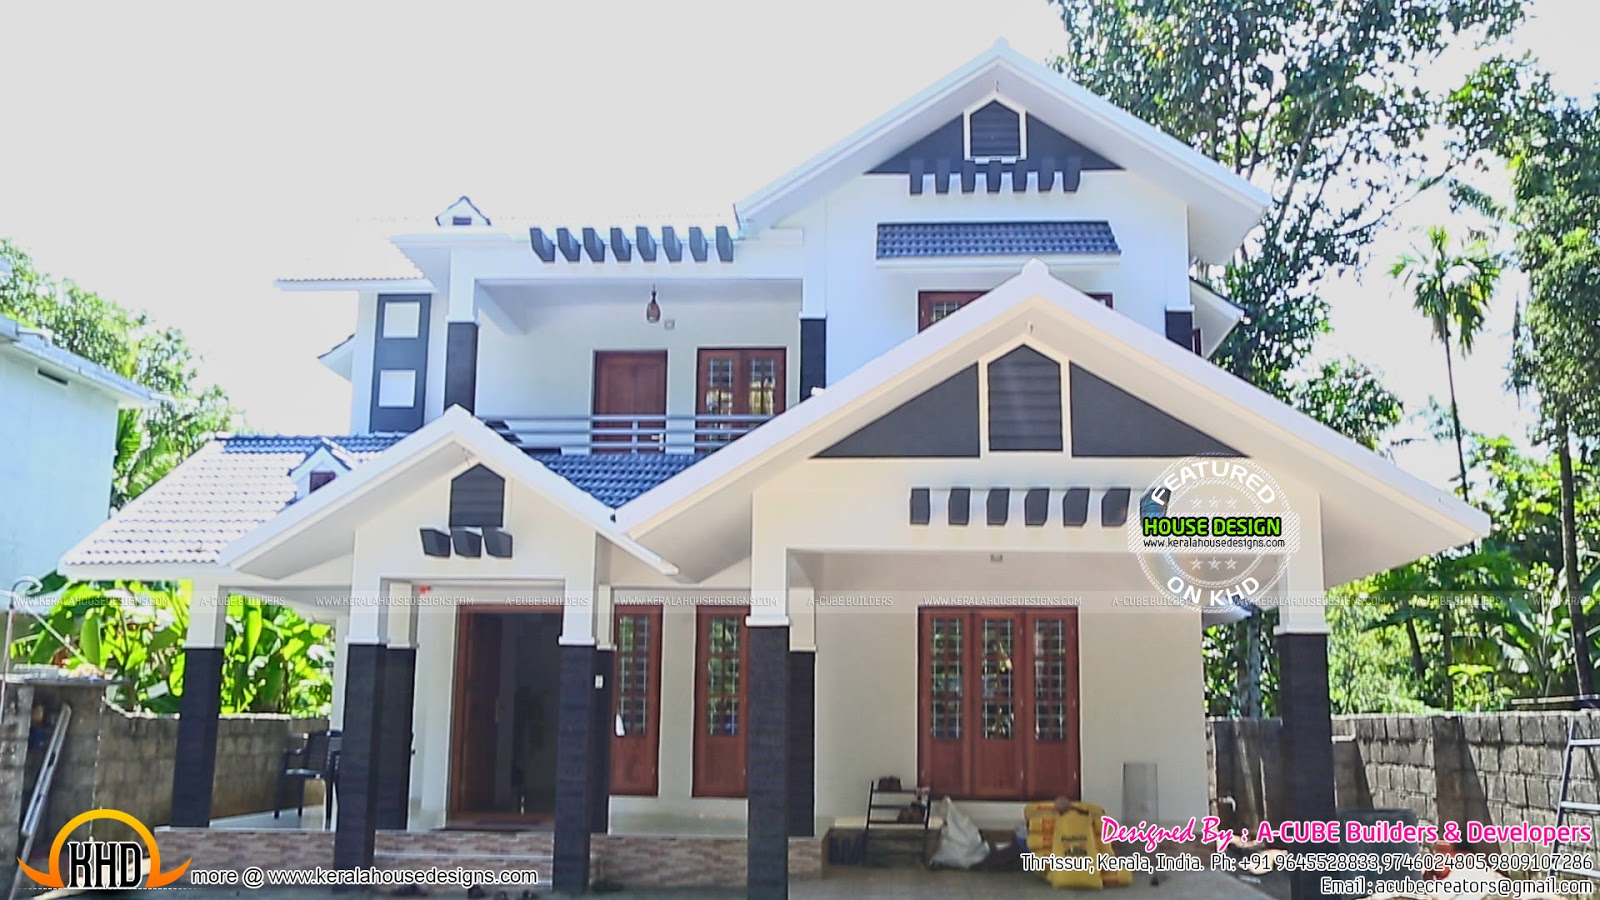 new house plans for 2016 starts here kerala home design new house plans and interior designs for january 2016